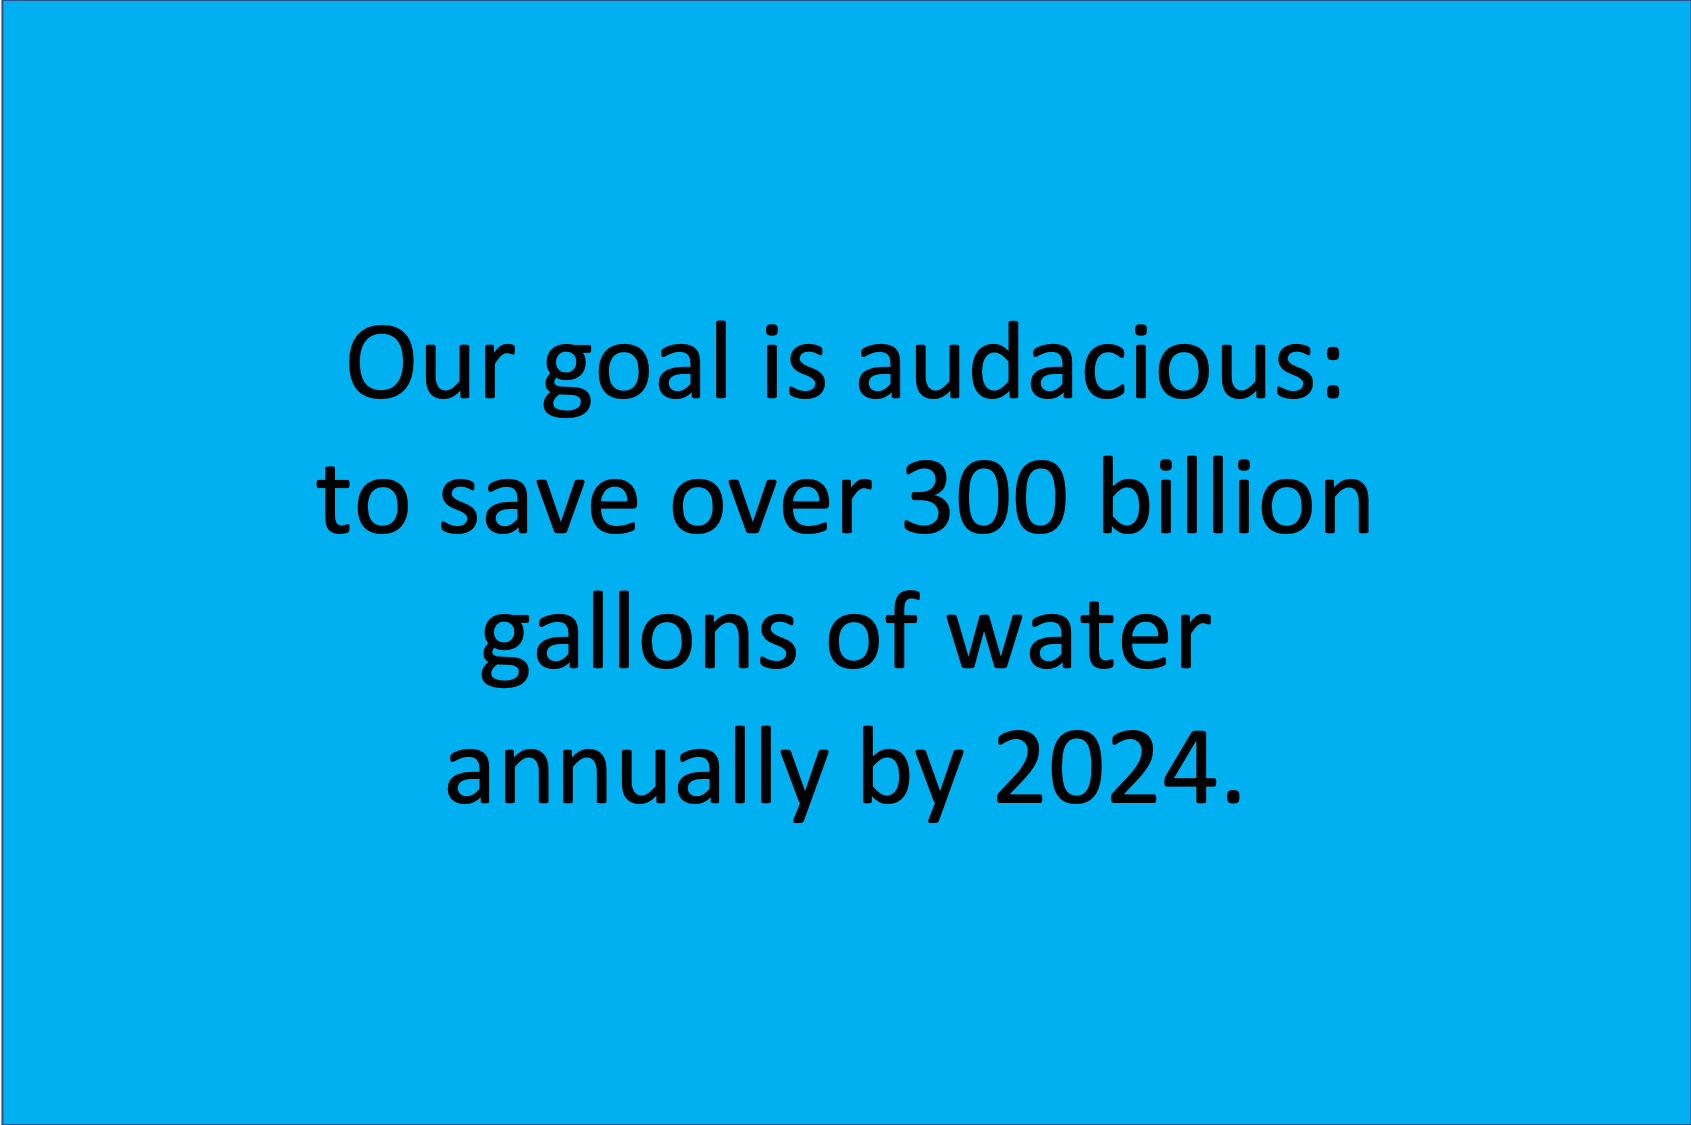 Our Goal is audacious.png